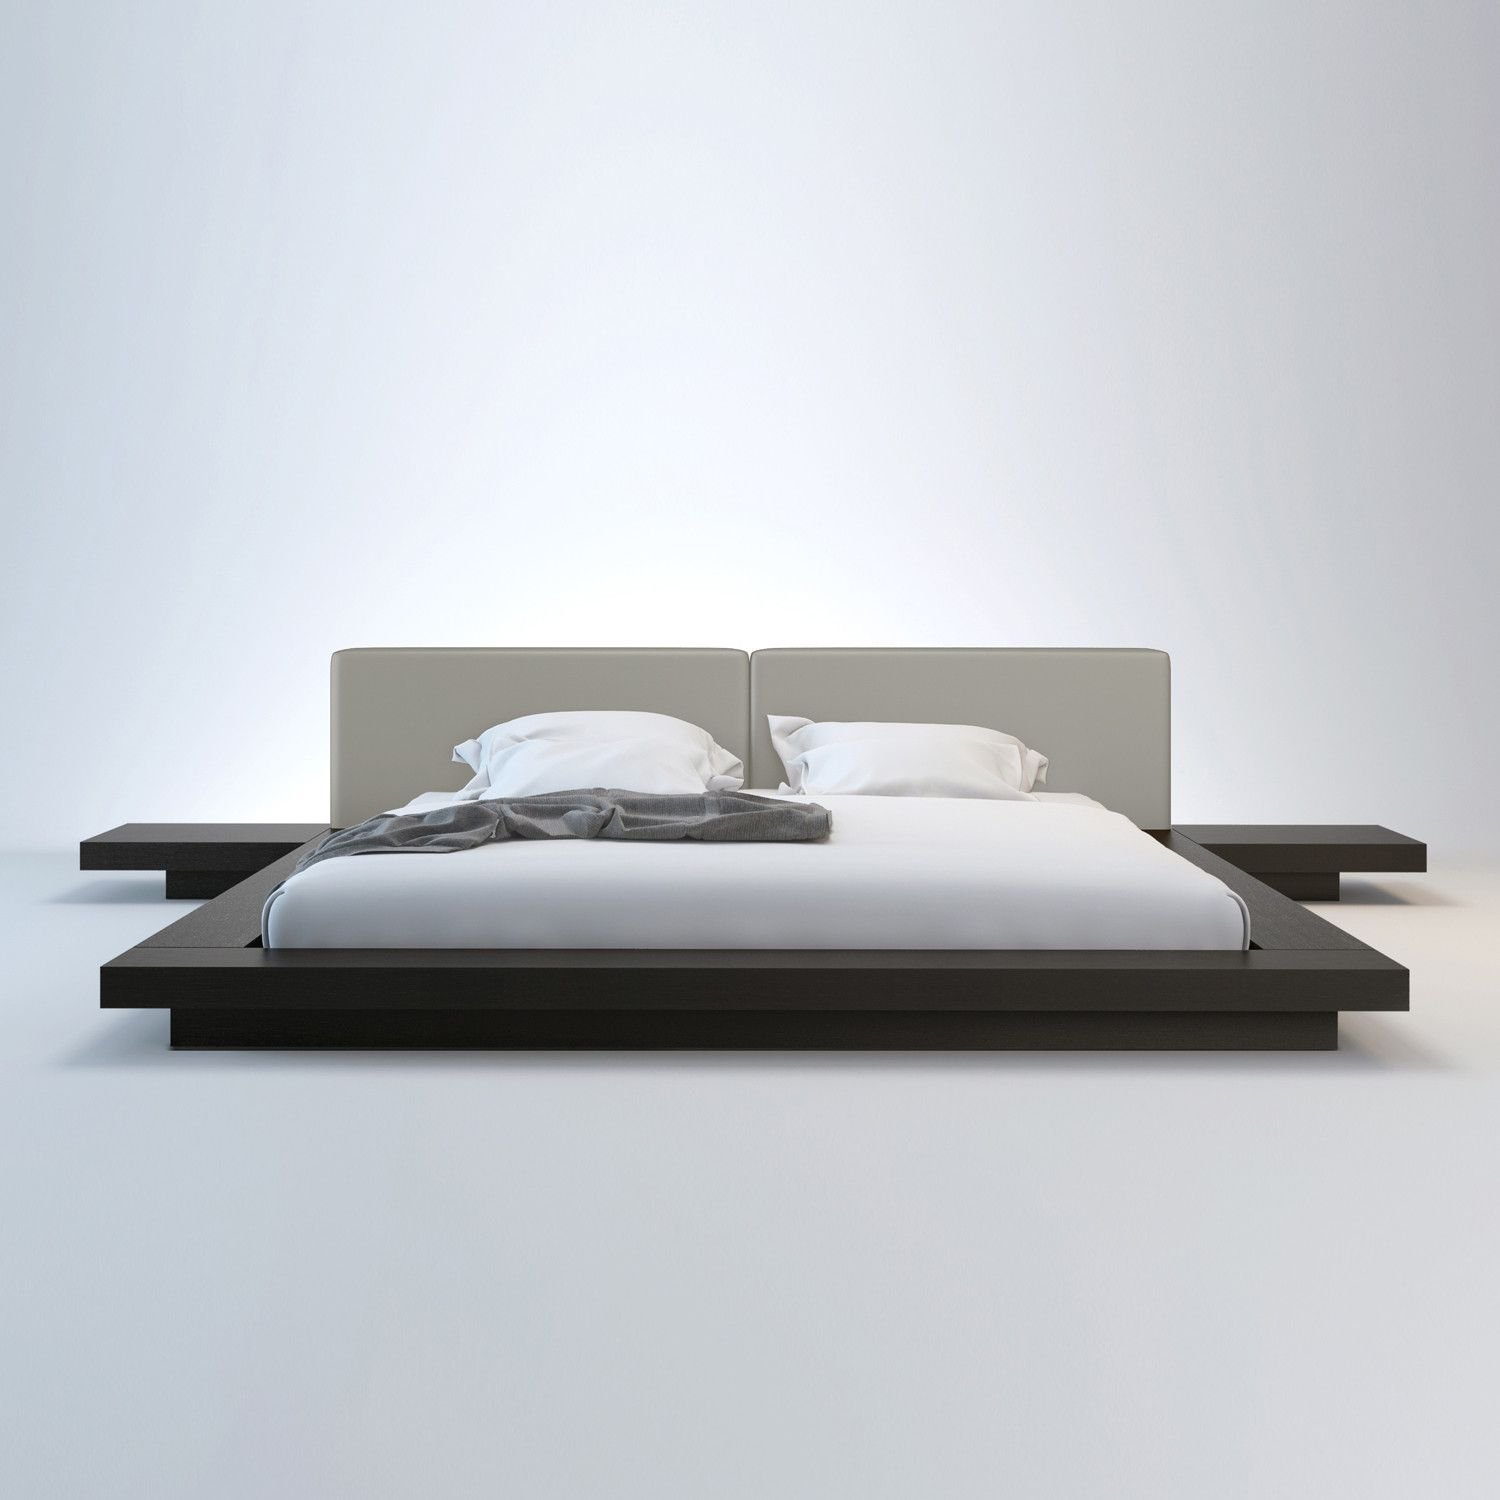 Worth Bed W Matching Nightstands Modern Platform Bed Japanese